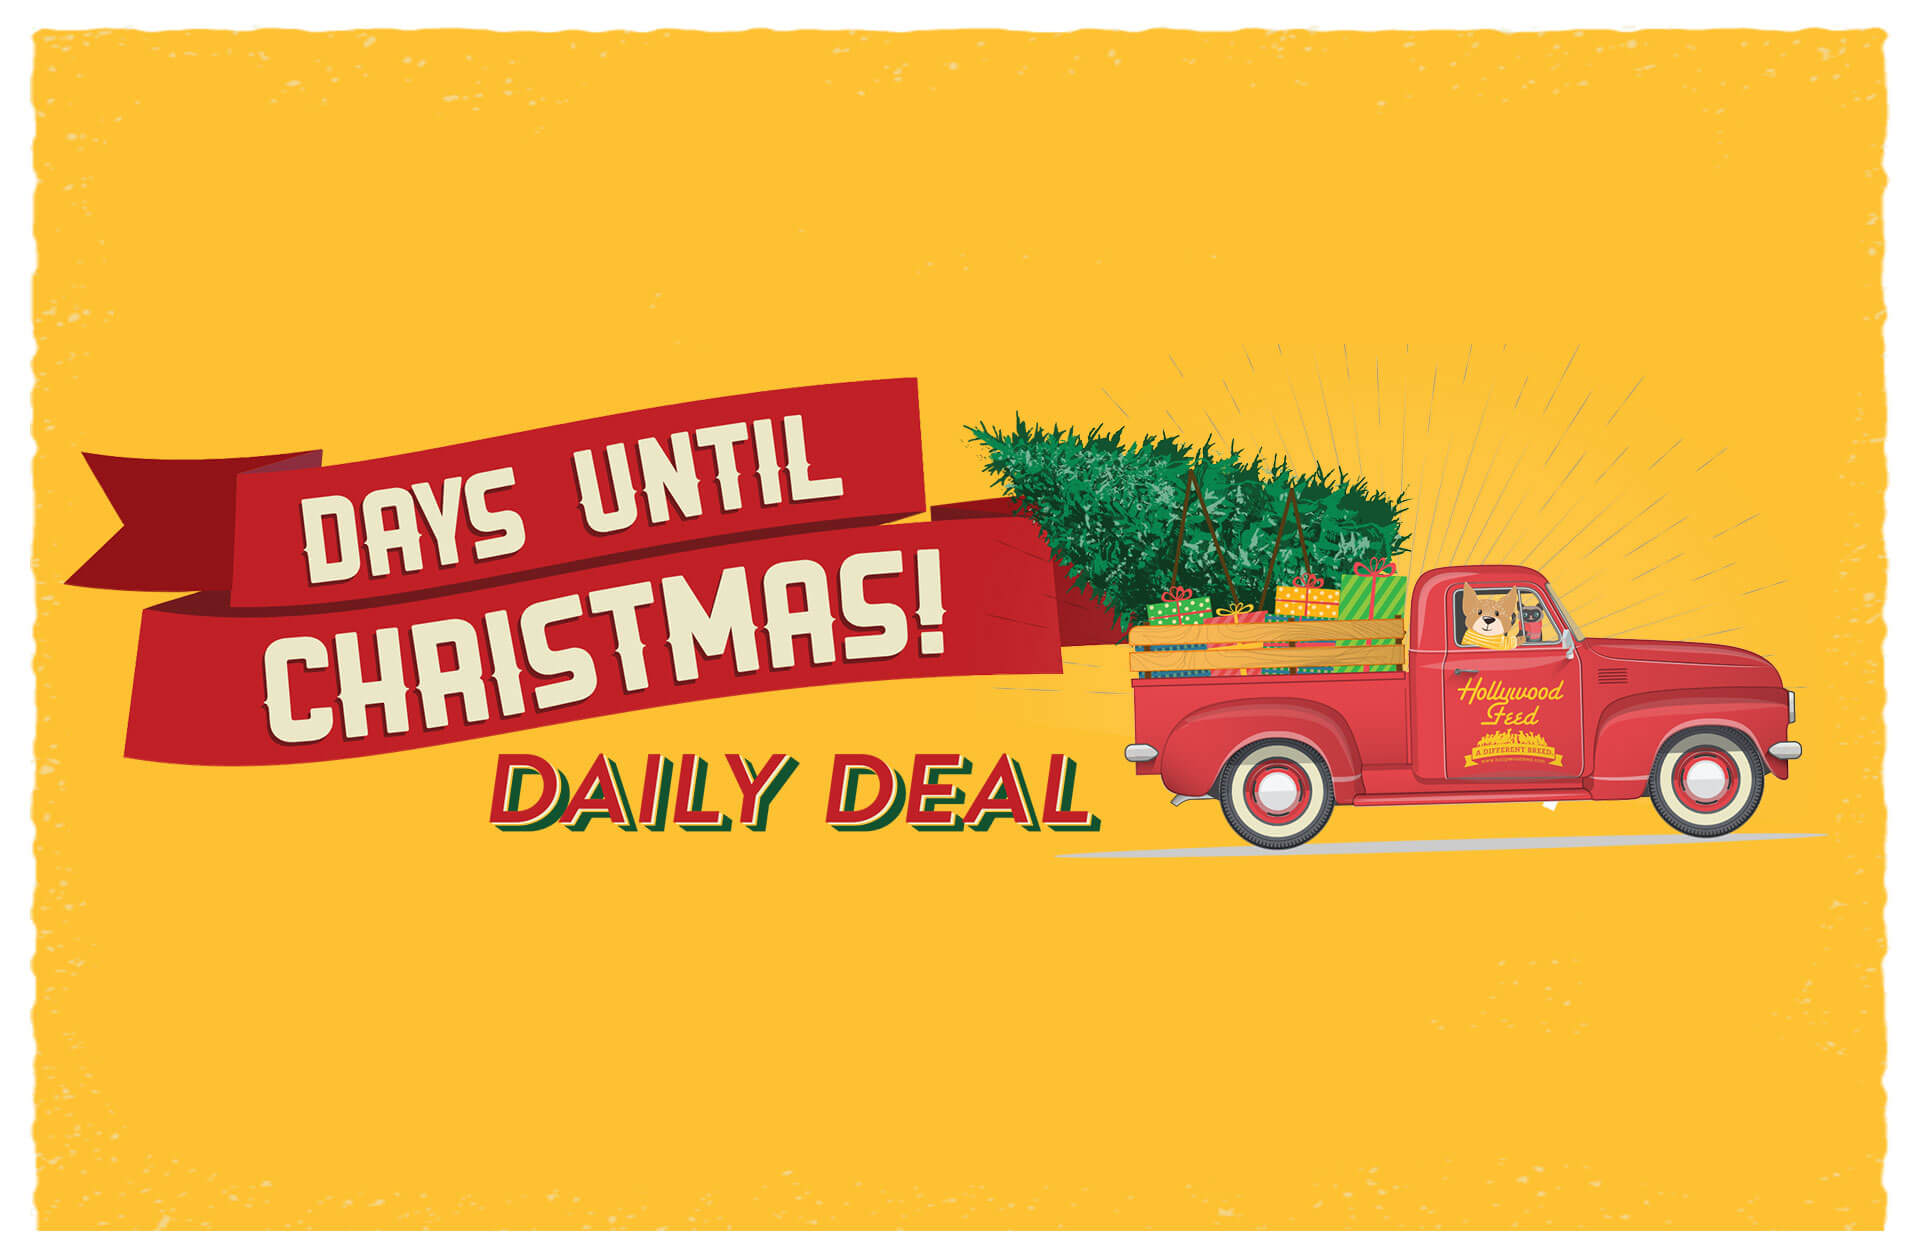 22 Days of Christmas Daily Deals